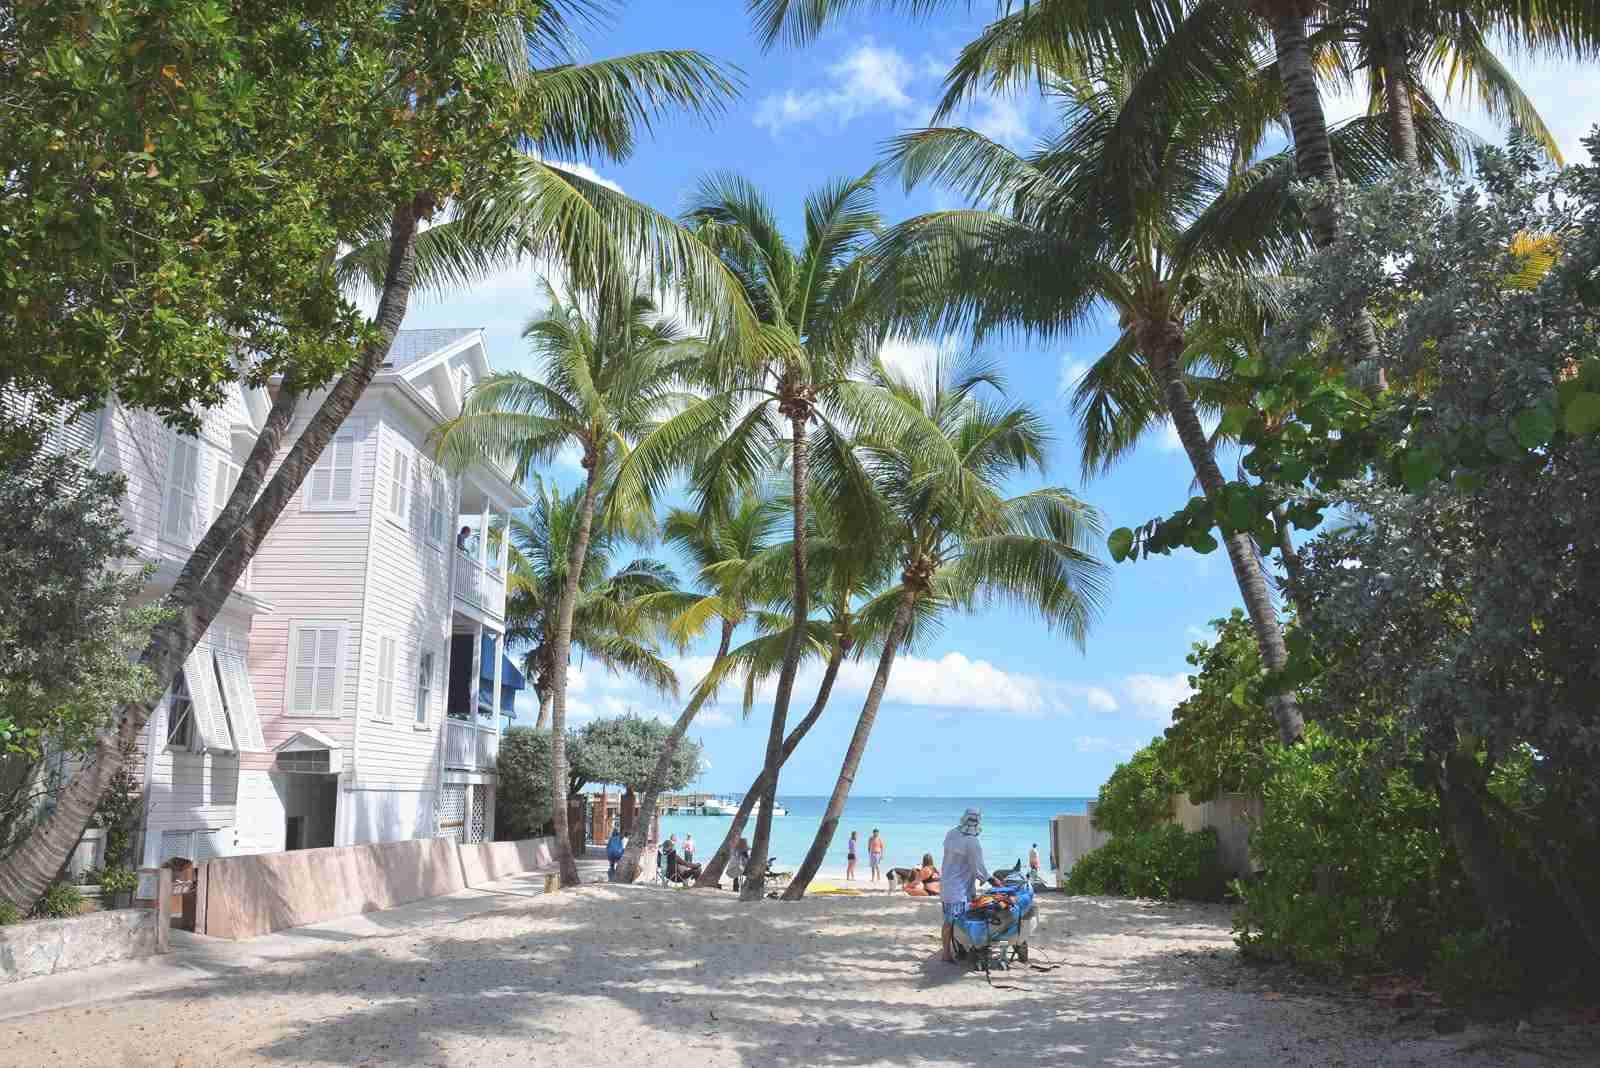 Key West, Florida Keys. (Photo via Shutterstock)